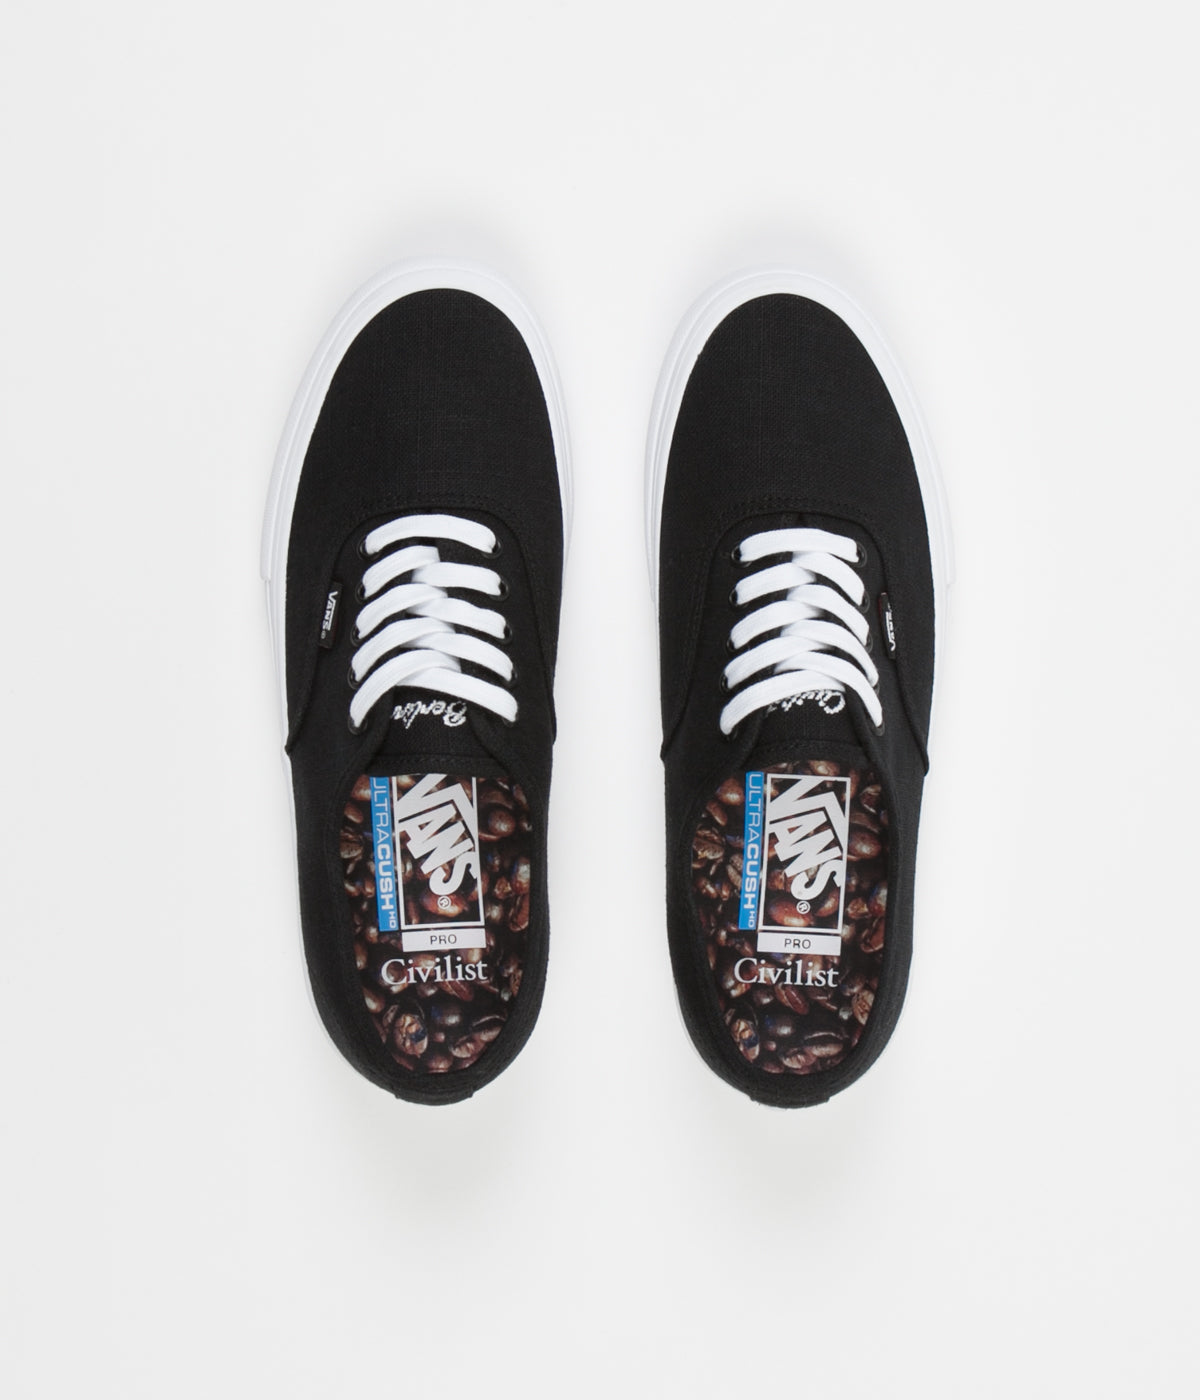 dfe6b91f1b Vans x Civilist Authentic Pro Shoes - Black   True White ...